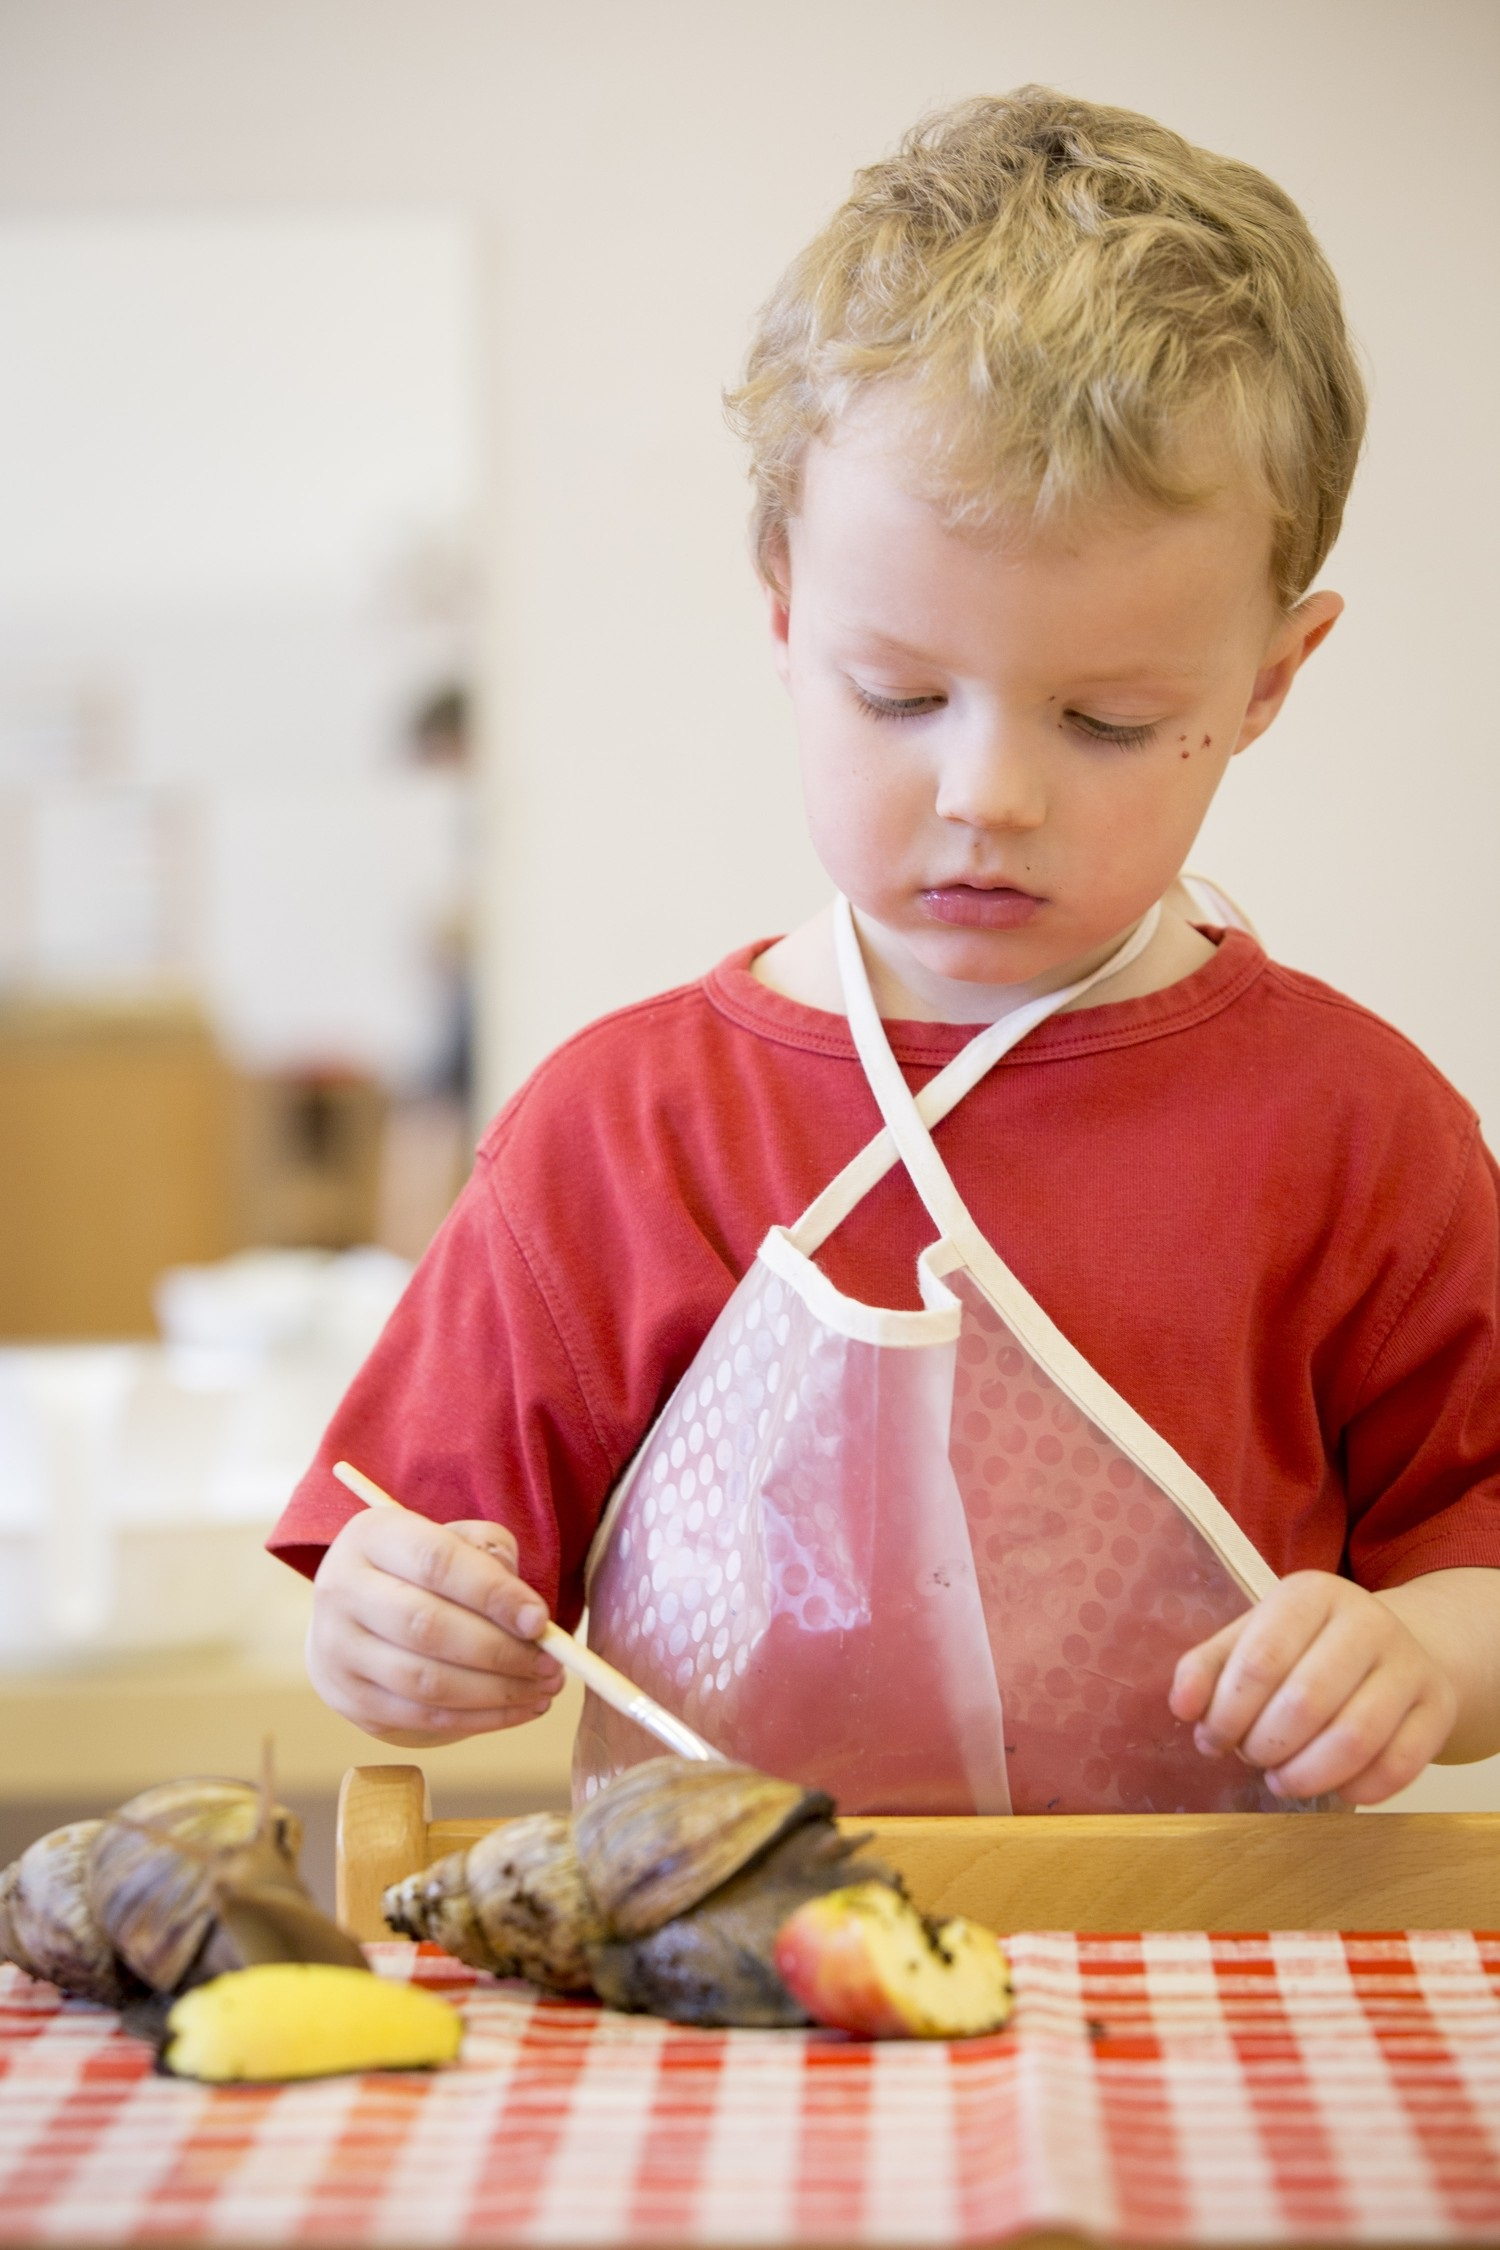 Introduction to Montessori Education